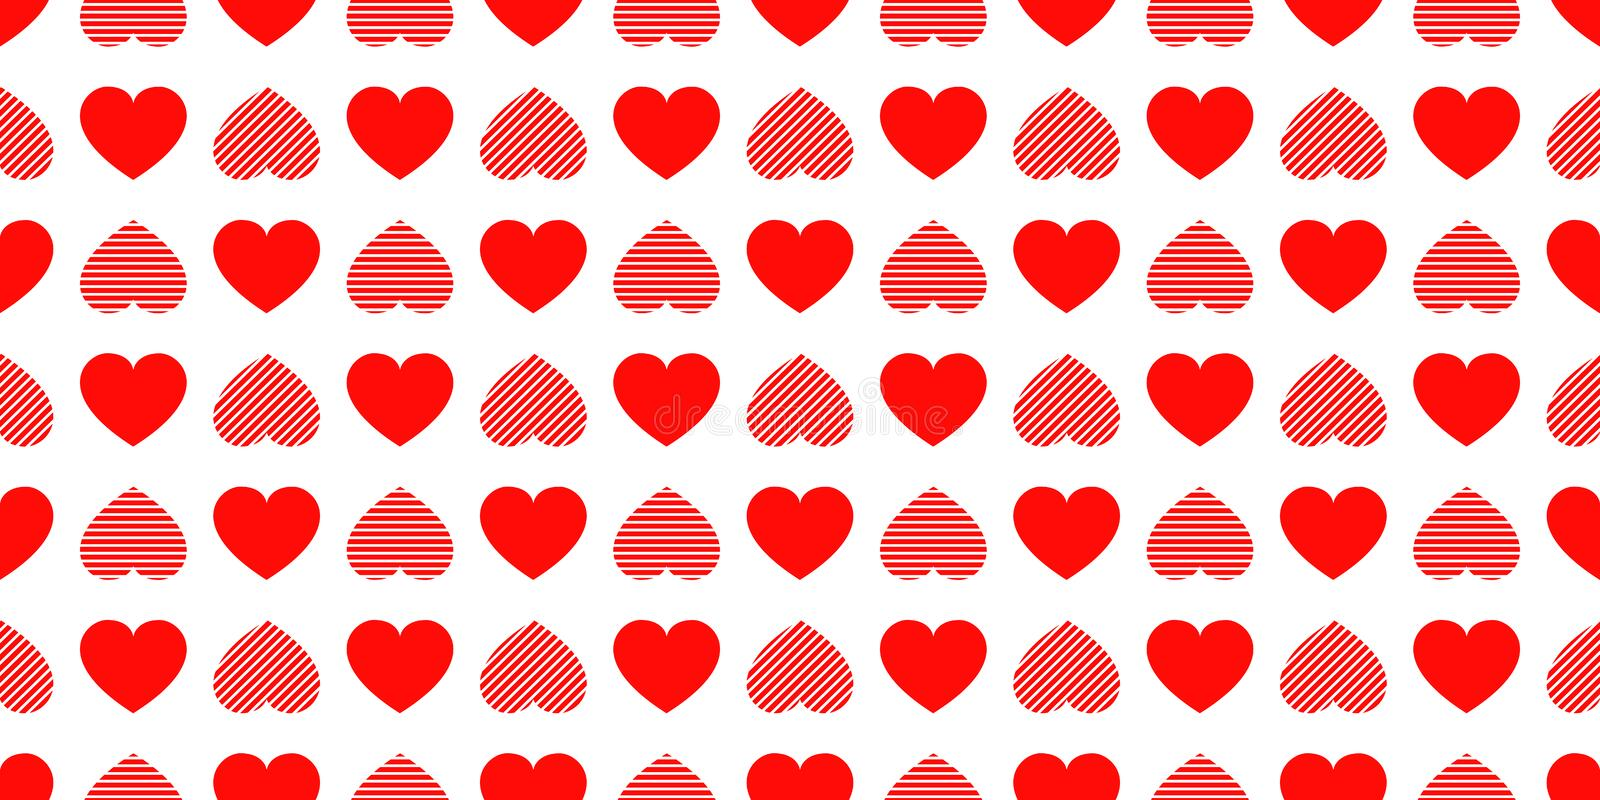 Valentine`s Day background. Love hearts icons seamless pattern. Abstract repeated texture. Red hearts symbols. Good choice for vector illustration